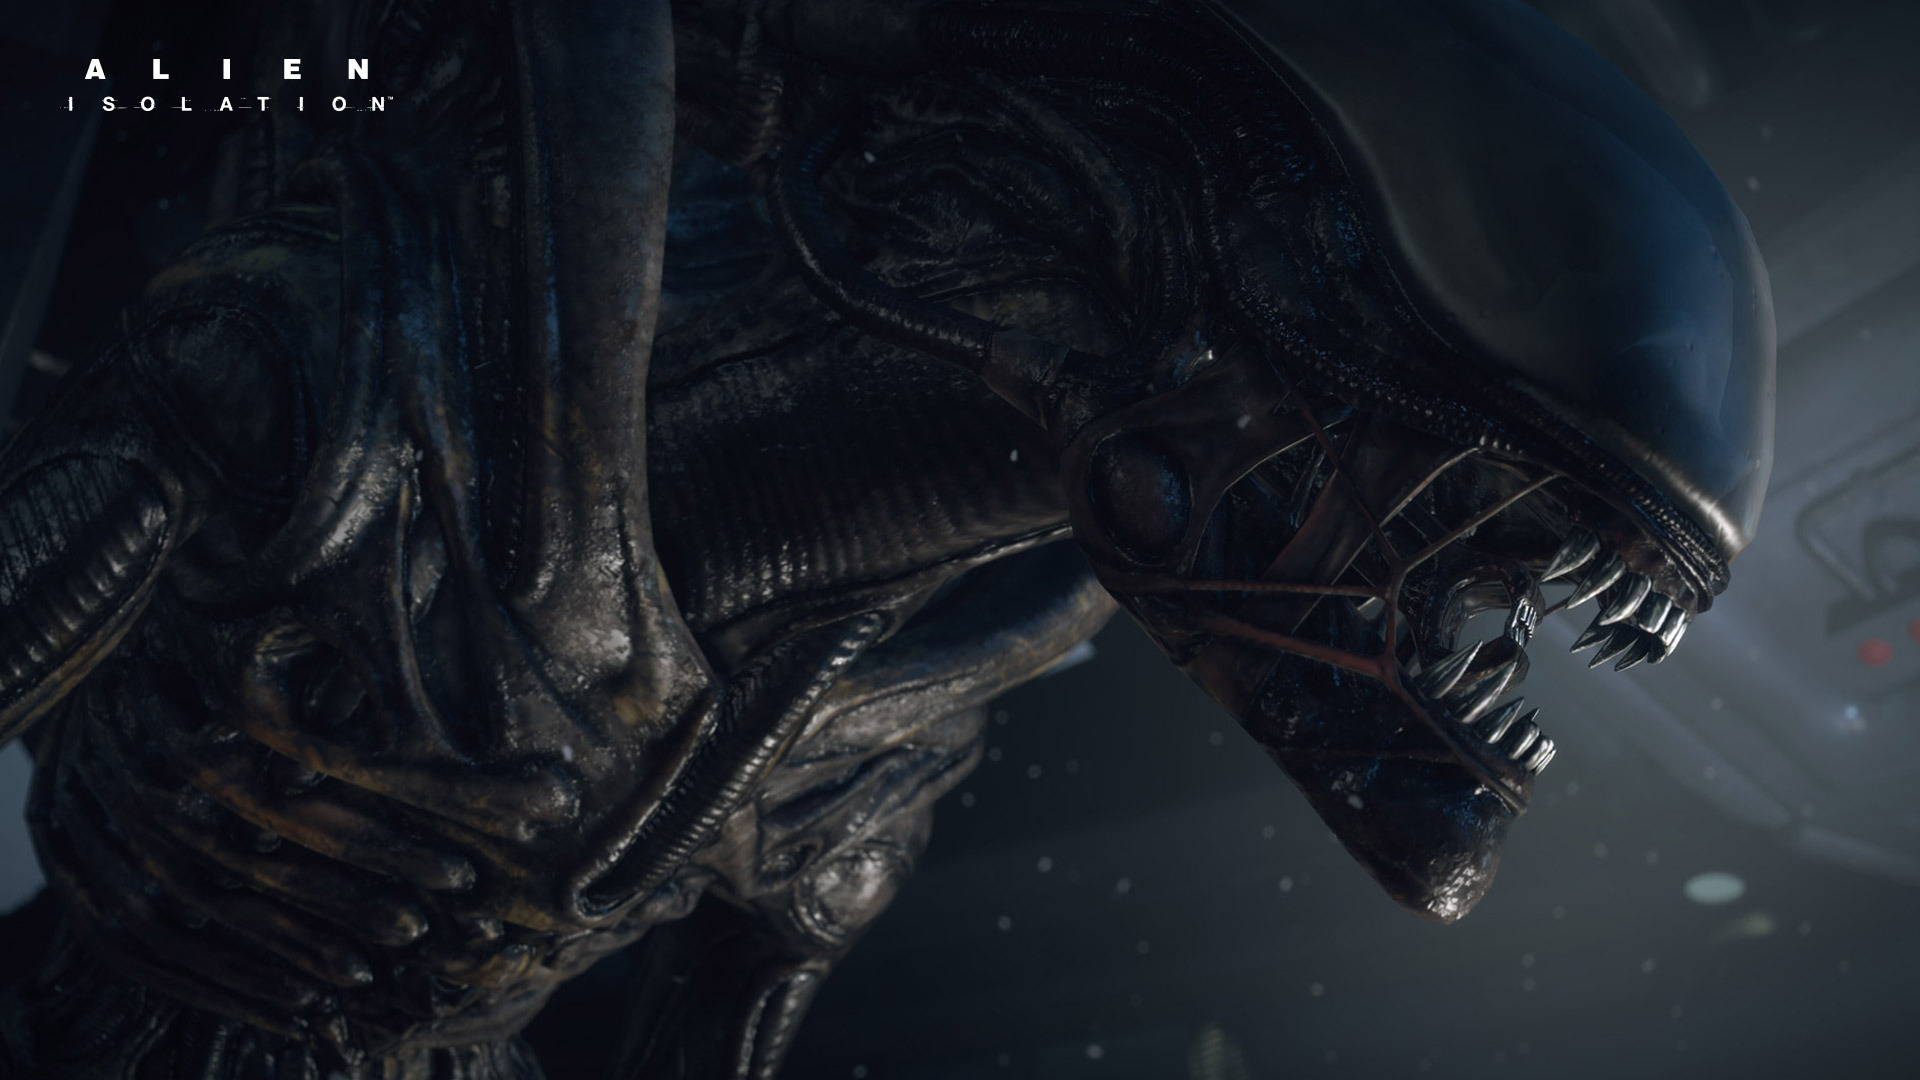 alien: isolation preys on our deepest fears ⋆ rogues portal